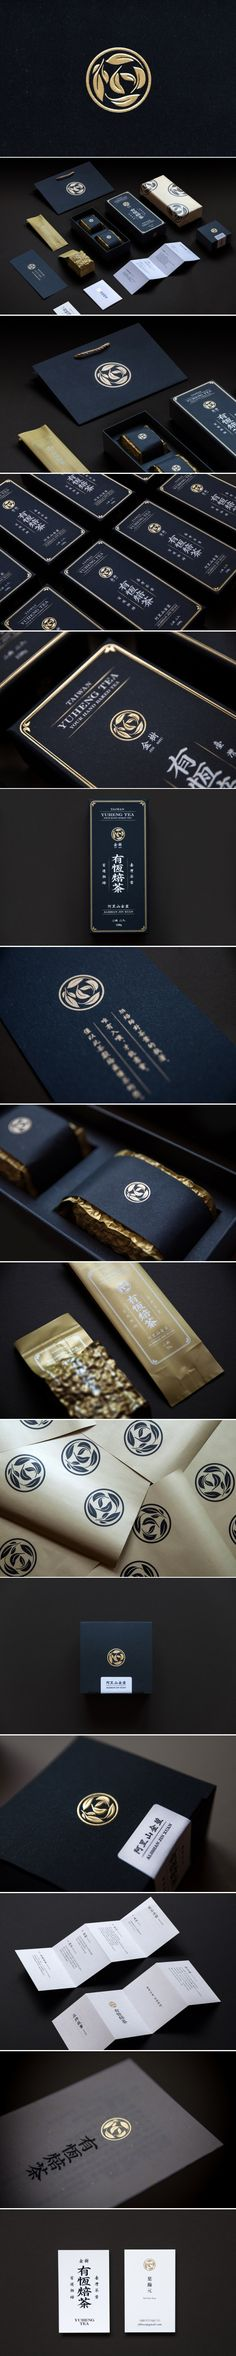 Yuheng Tea - Brand identity & Packaging Design by Onion Design Associates